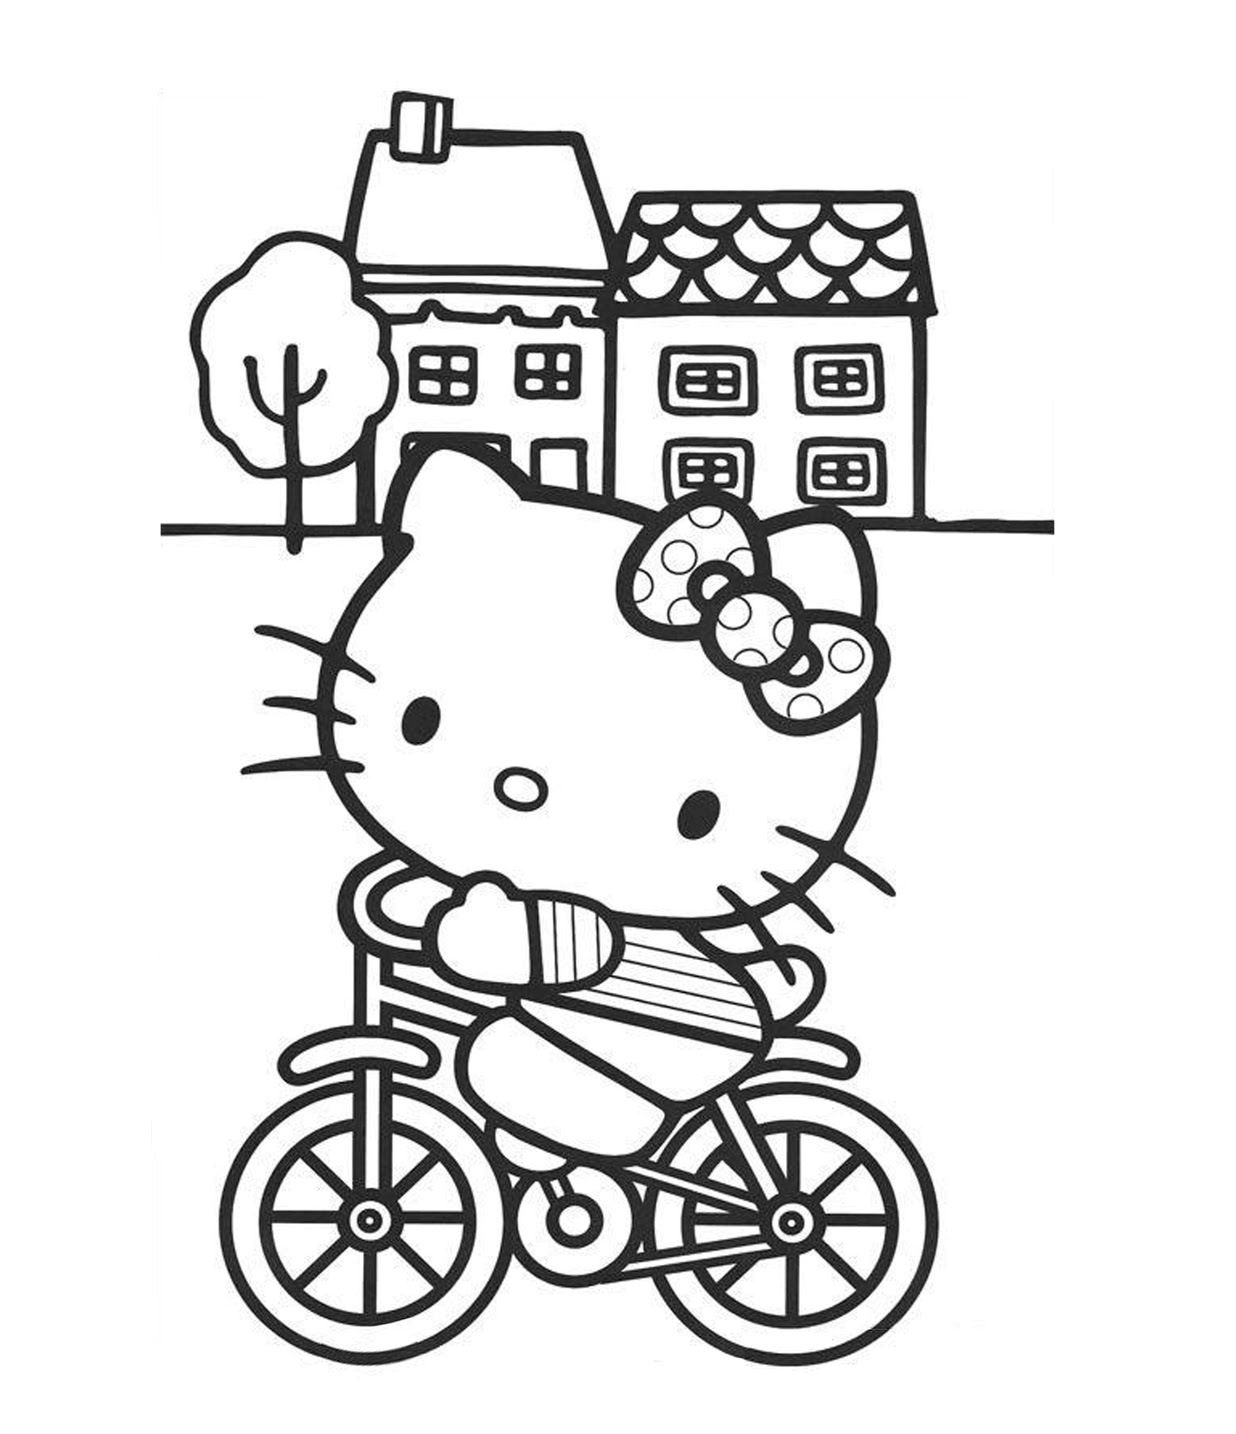 Riding Bicycle Coloring Page For Kids | Transportation Coloring ...